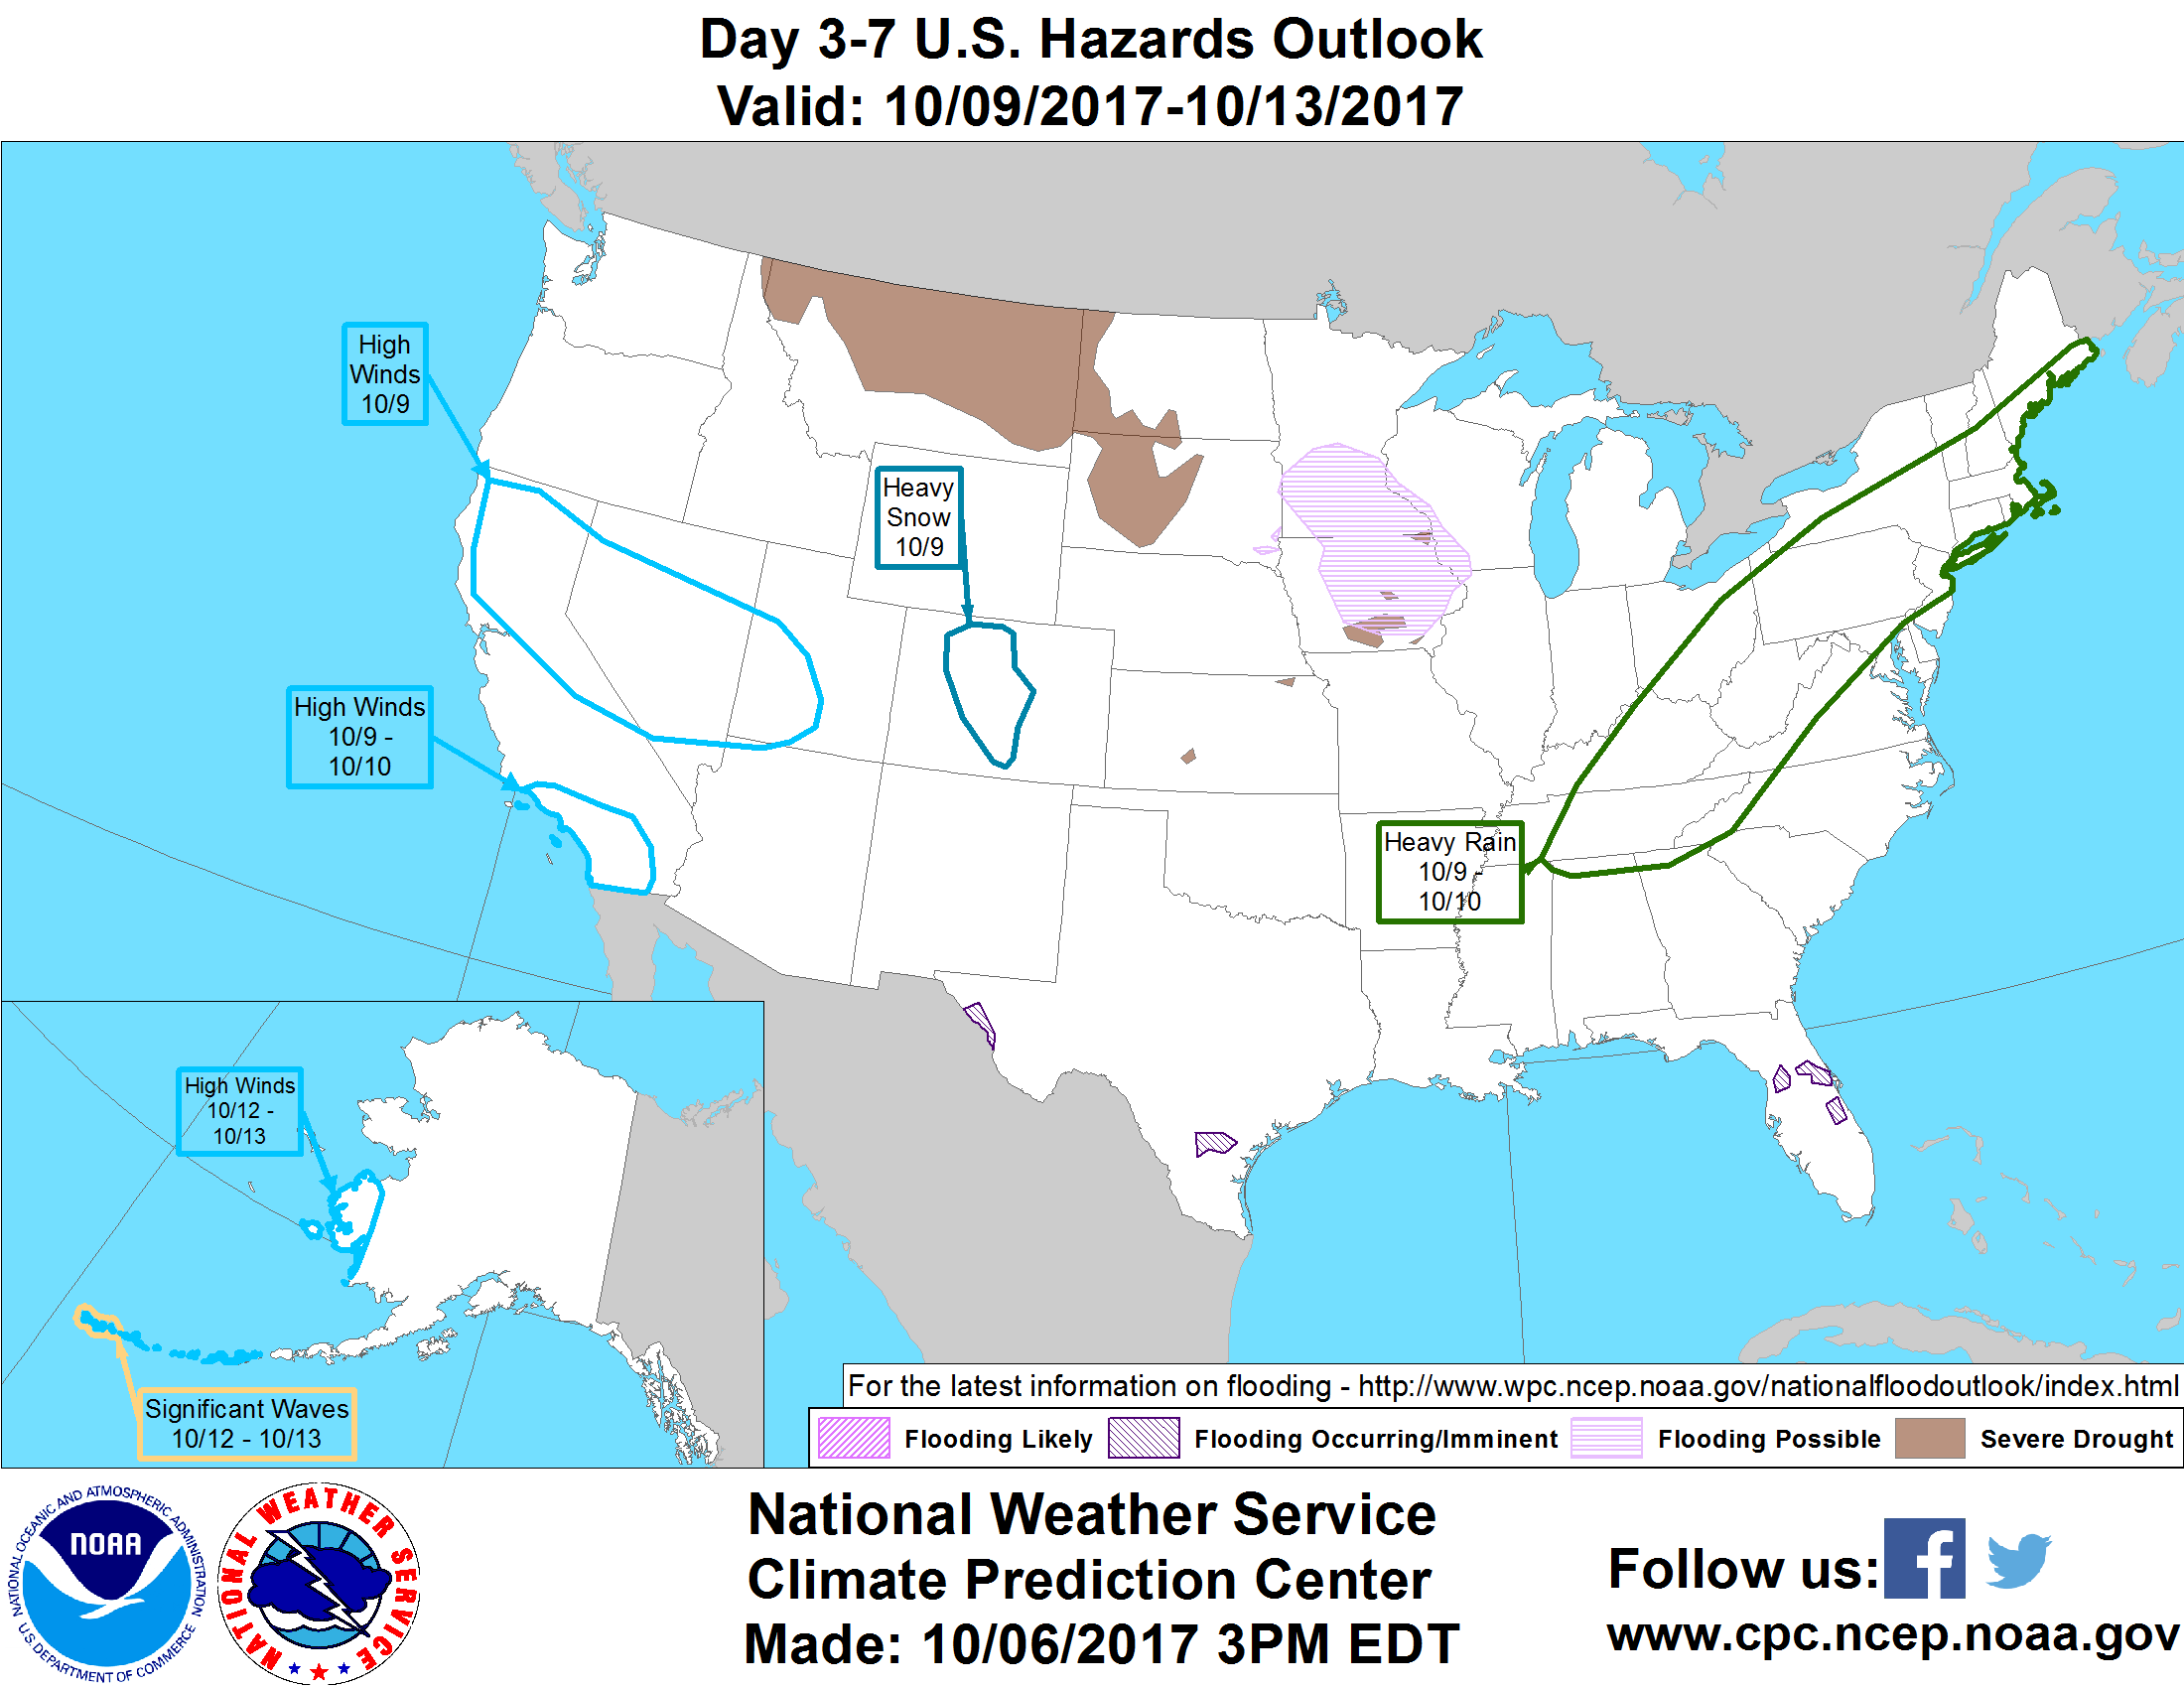 probabilistic hazards outlook